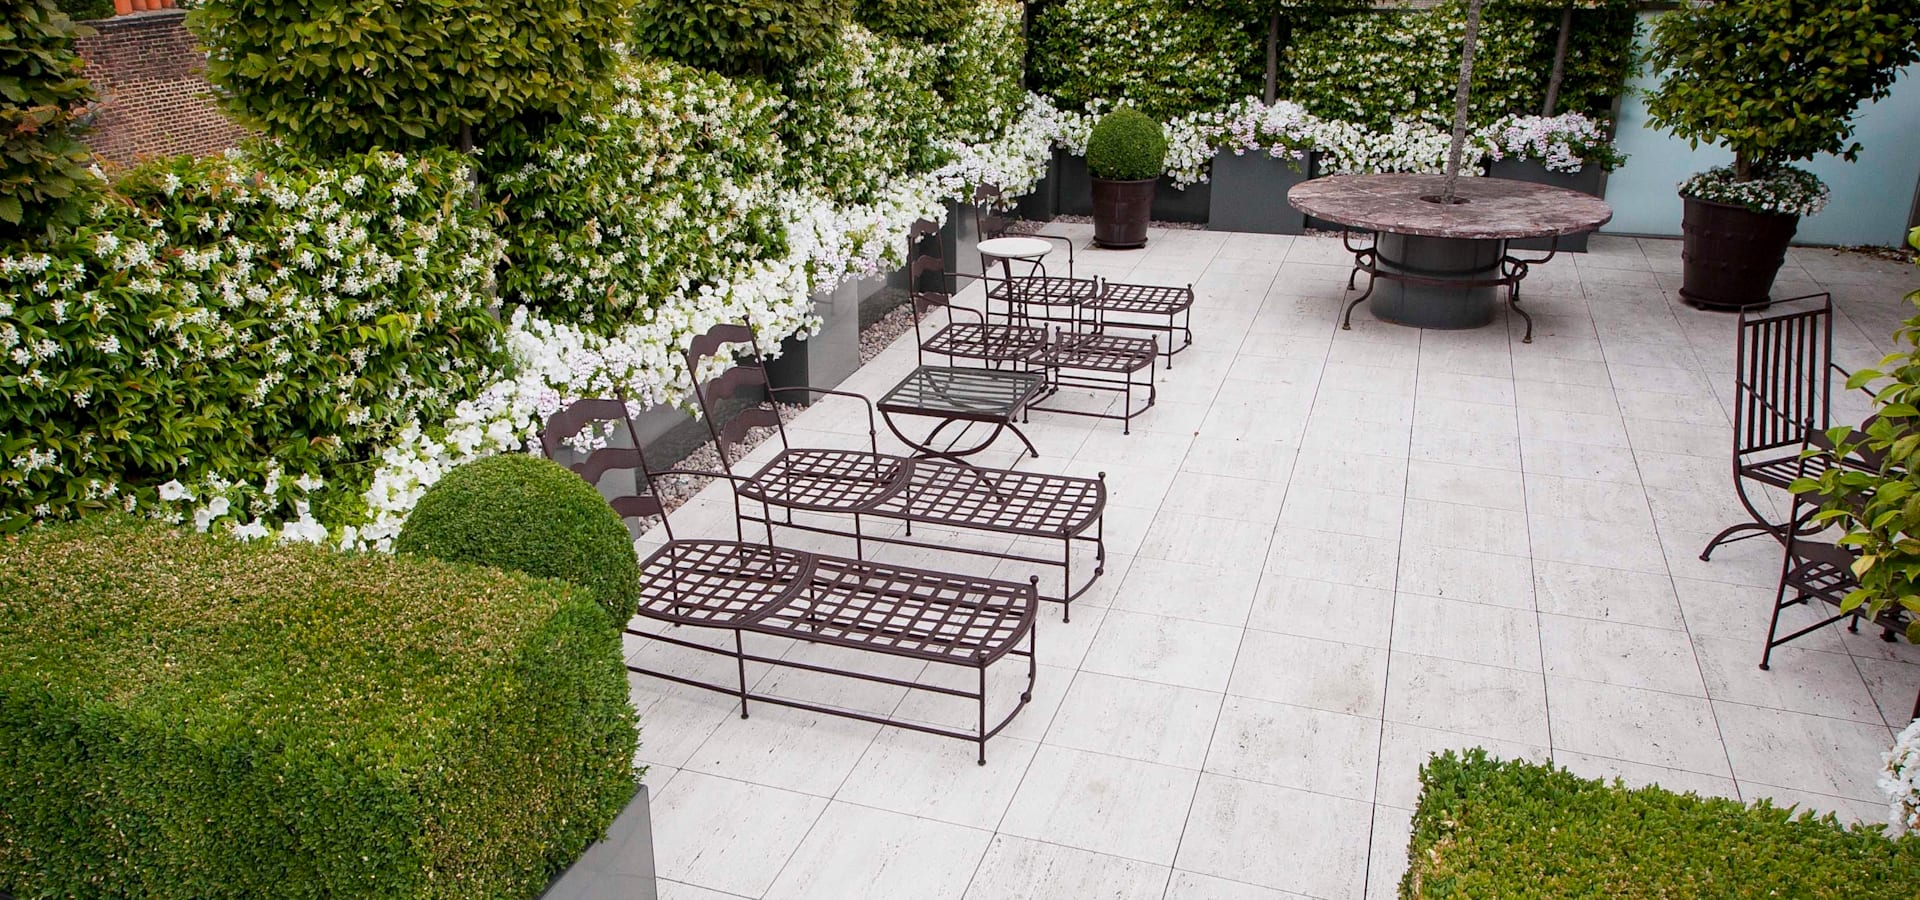 Kew roof terrace by cameron landscapes and gardens homify for Garden design questions